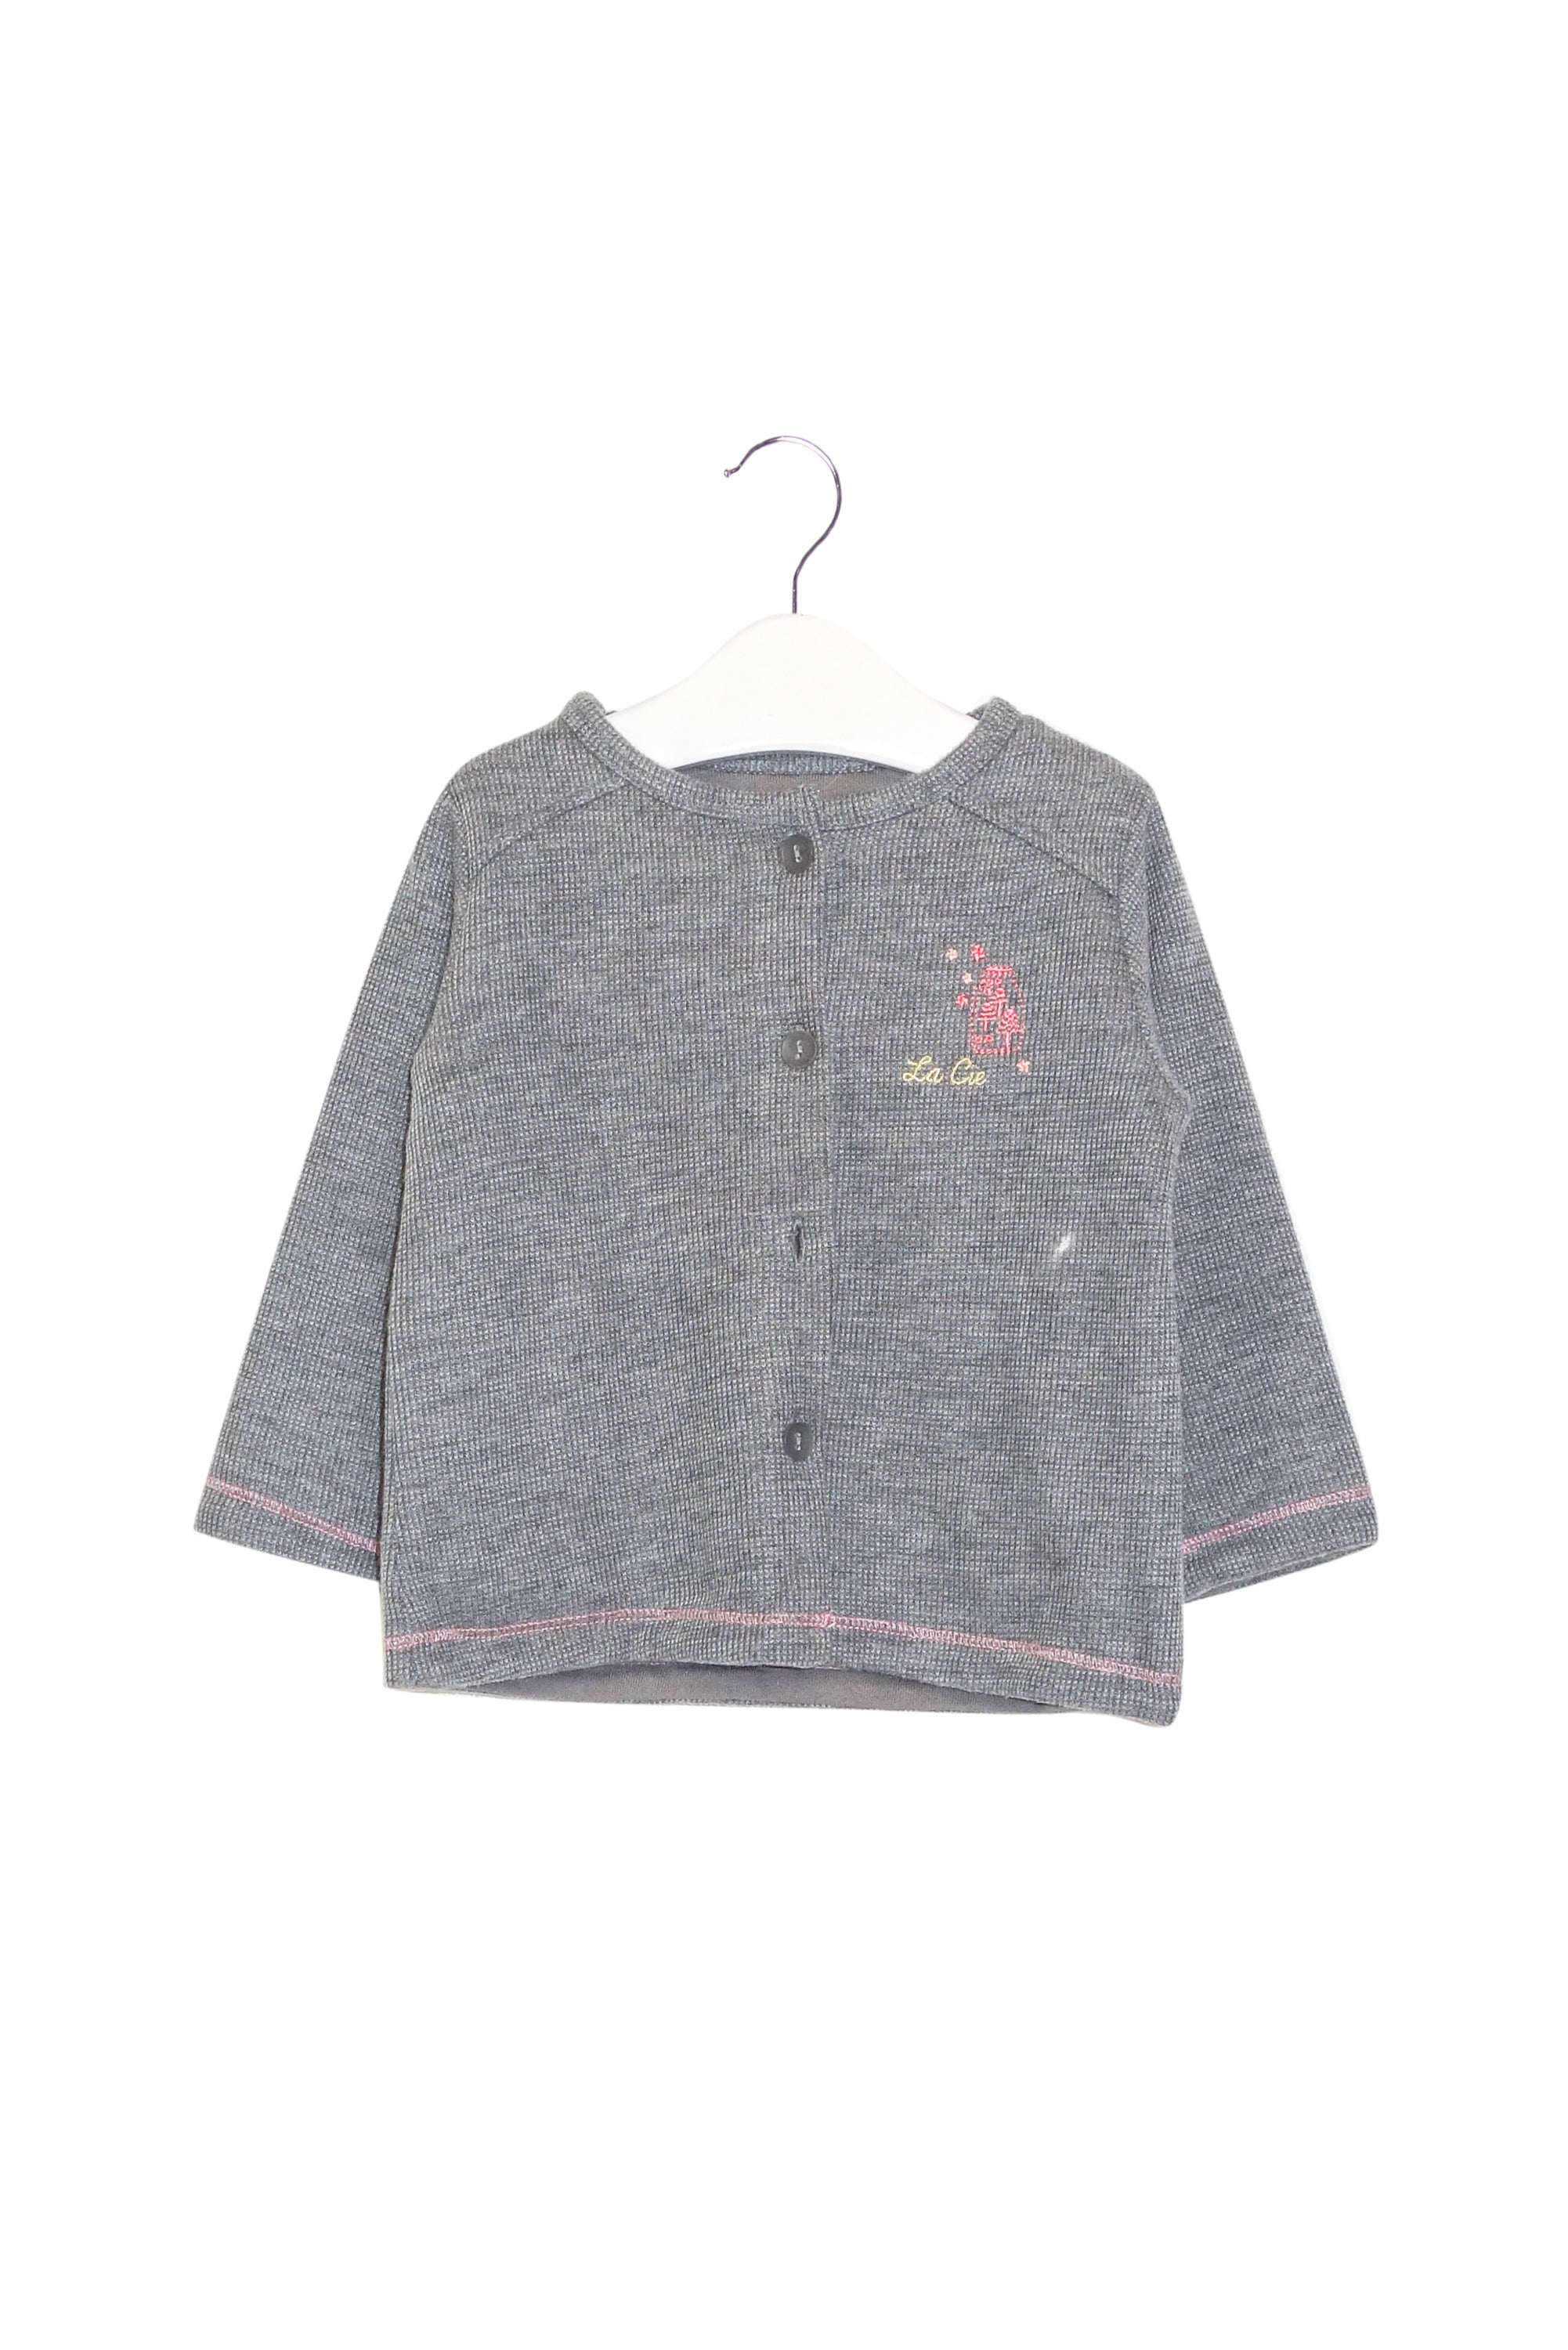 10013921 La Compagnie des Petits Baby ~ Sweater 6-12M at Retykle